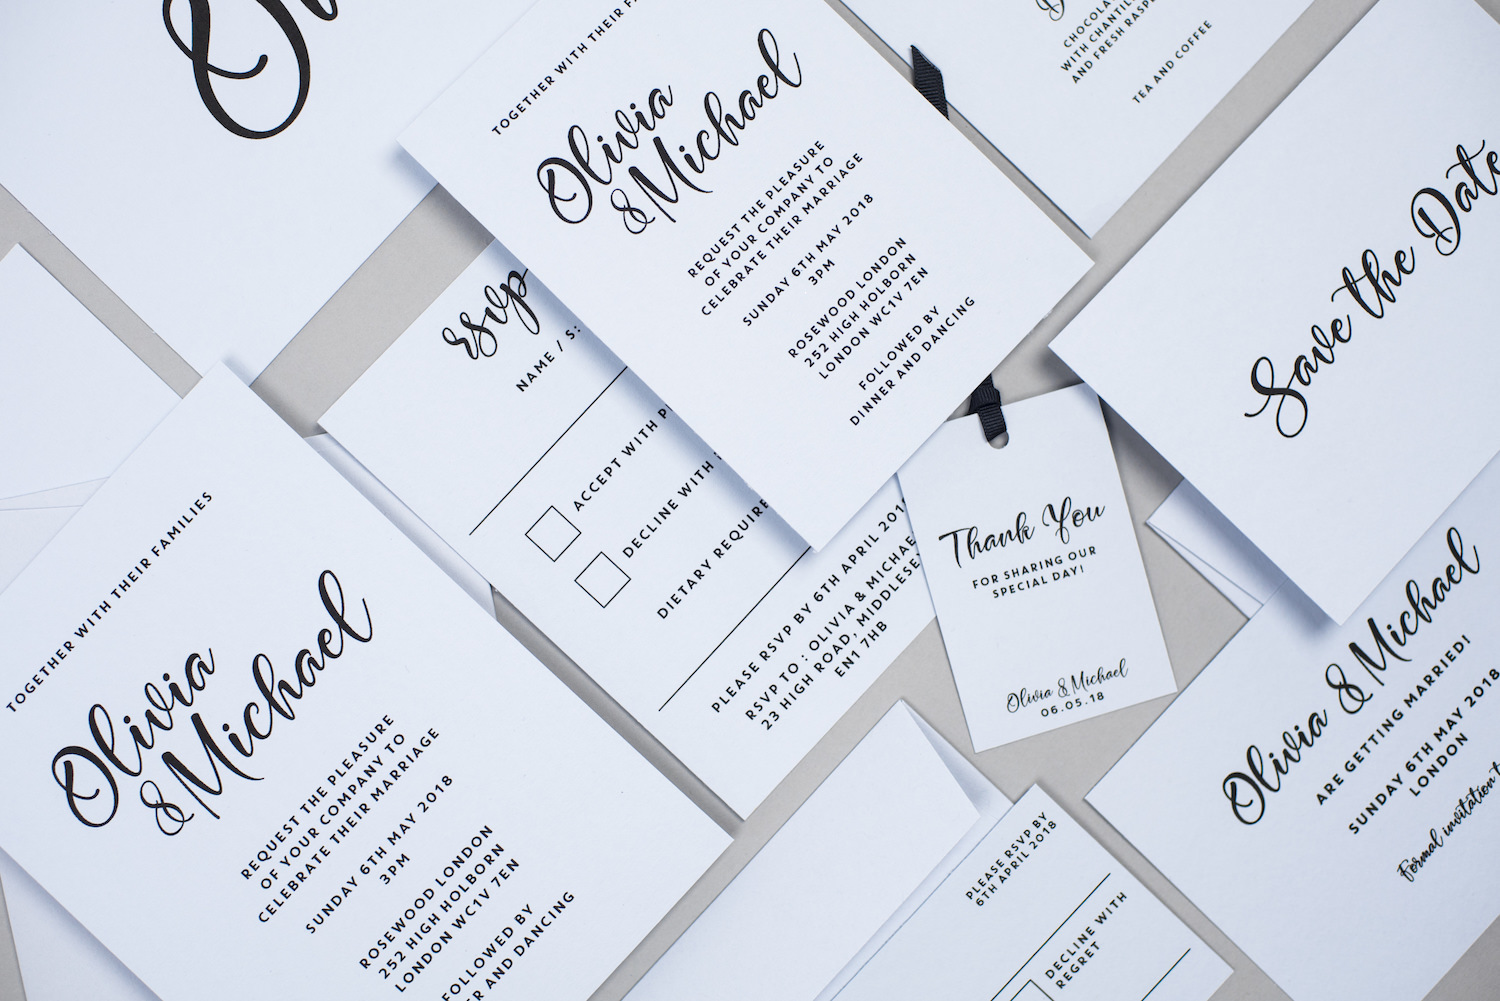 TOP 8 WEDDING STATIONERY TIPS